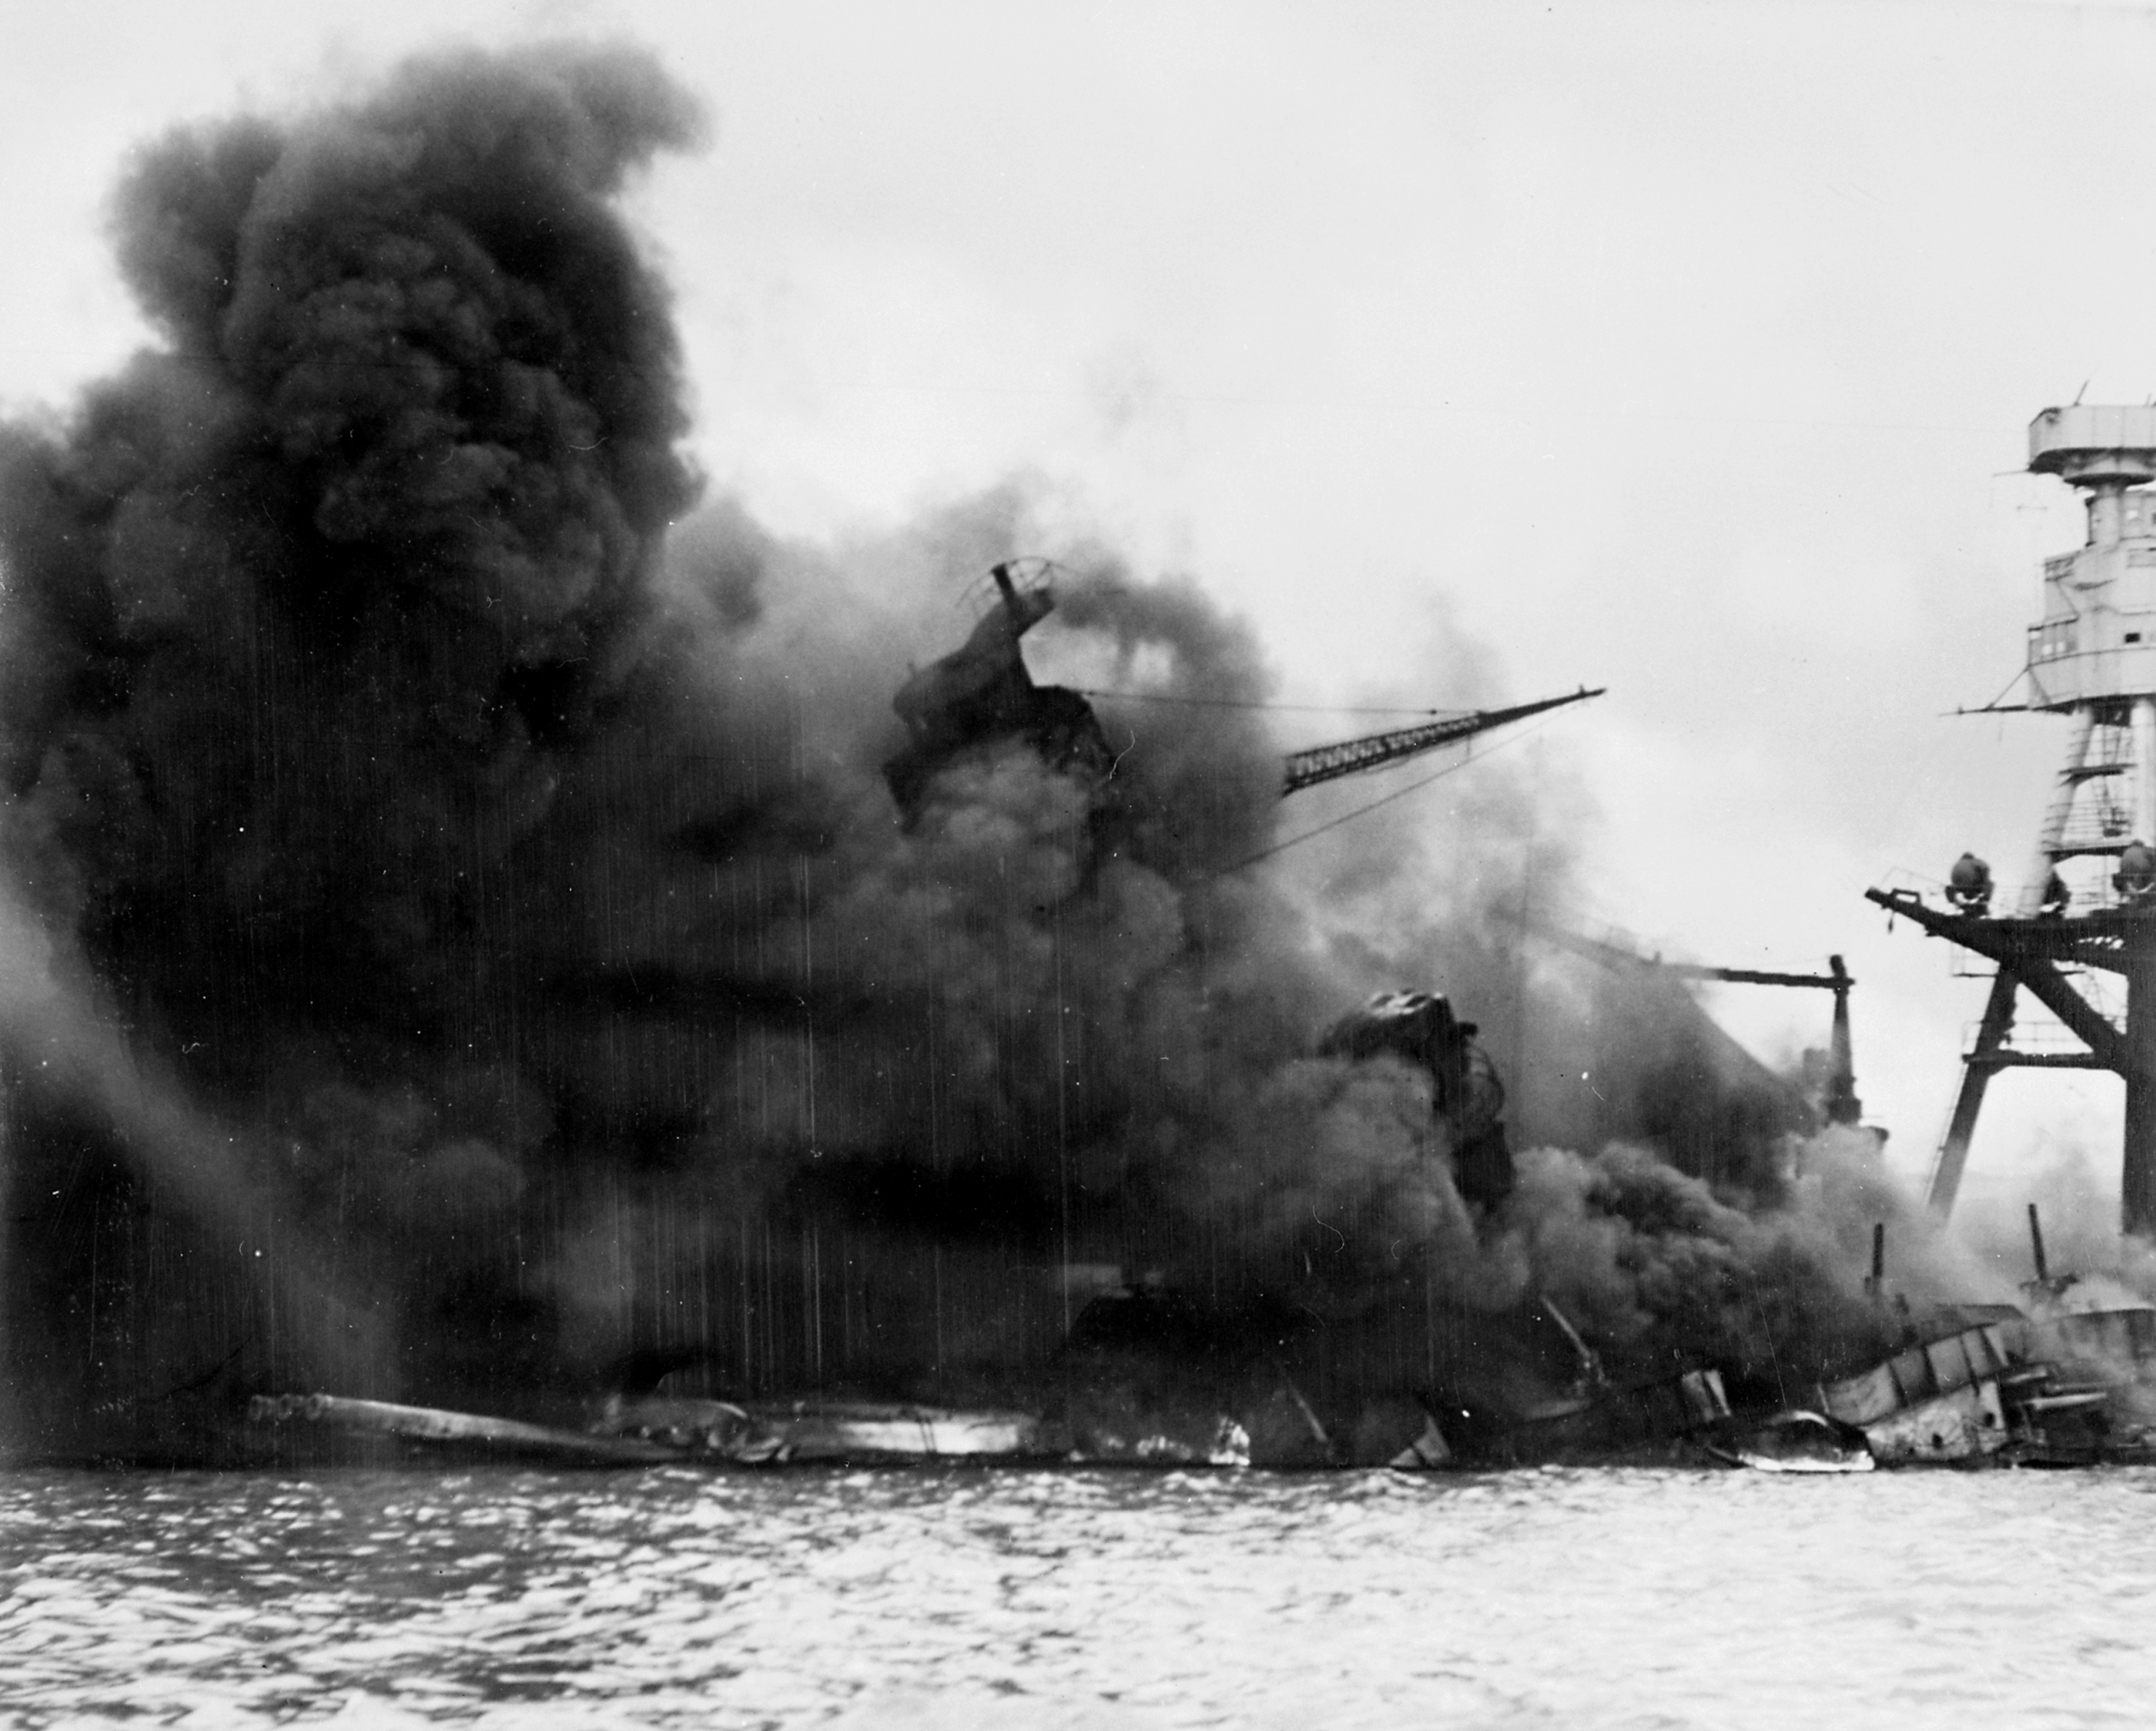 The ruined hulk of the USS Arizona burns after the attack.